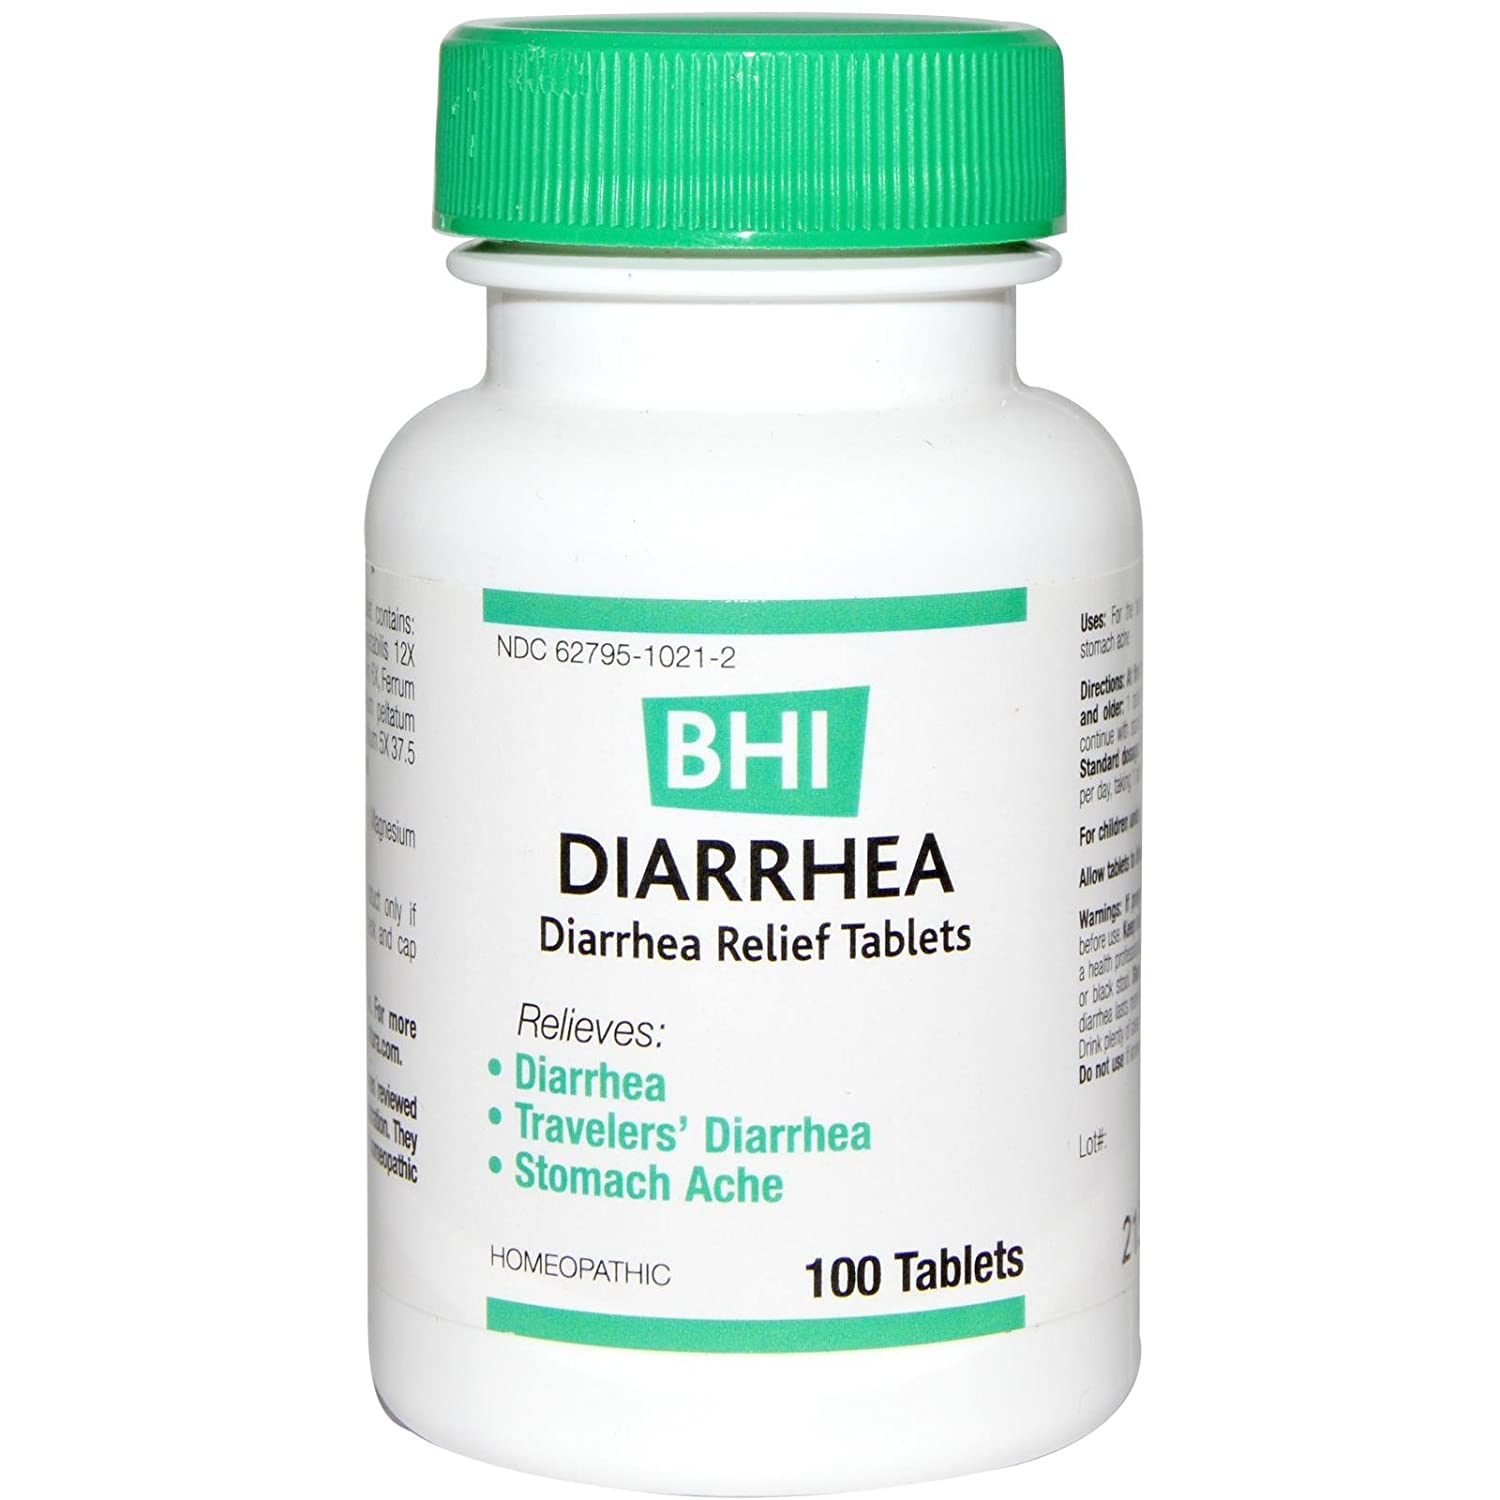 HEEL - Diarrhea, 100 tablets : Sodium Mineral Supplements : Beauty